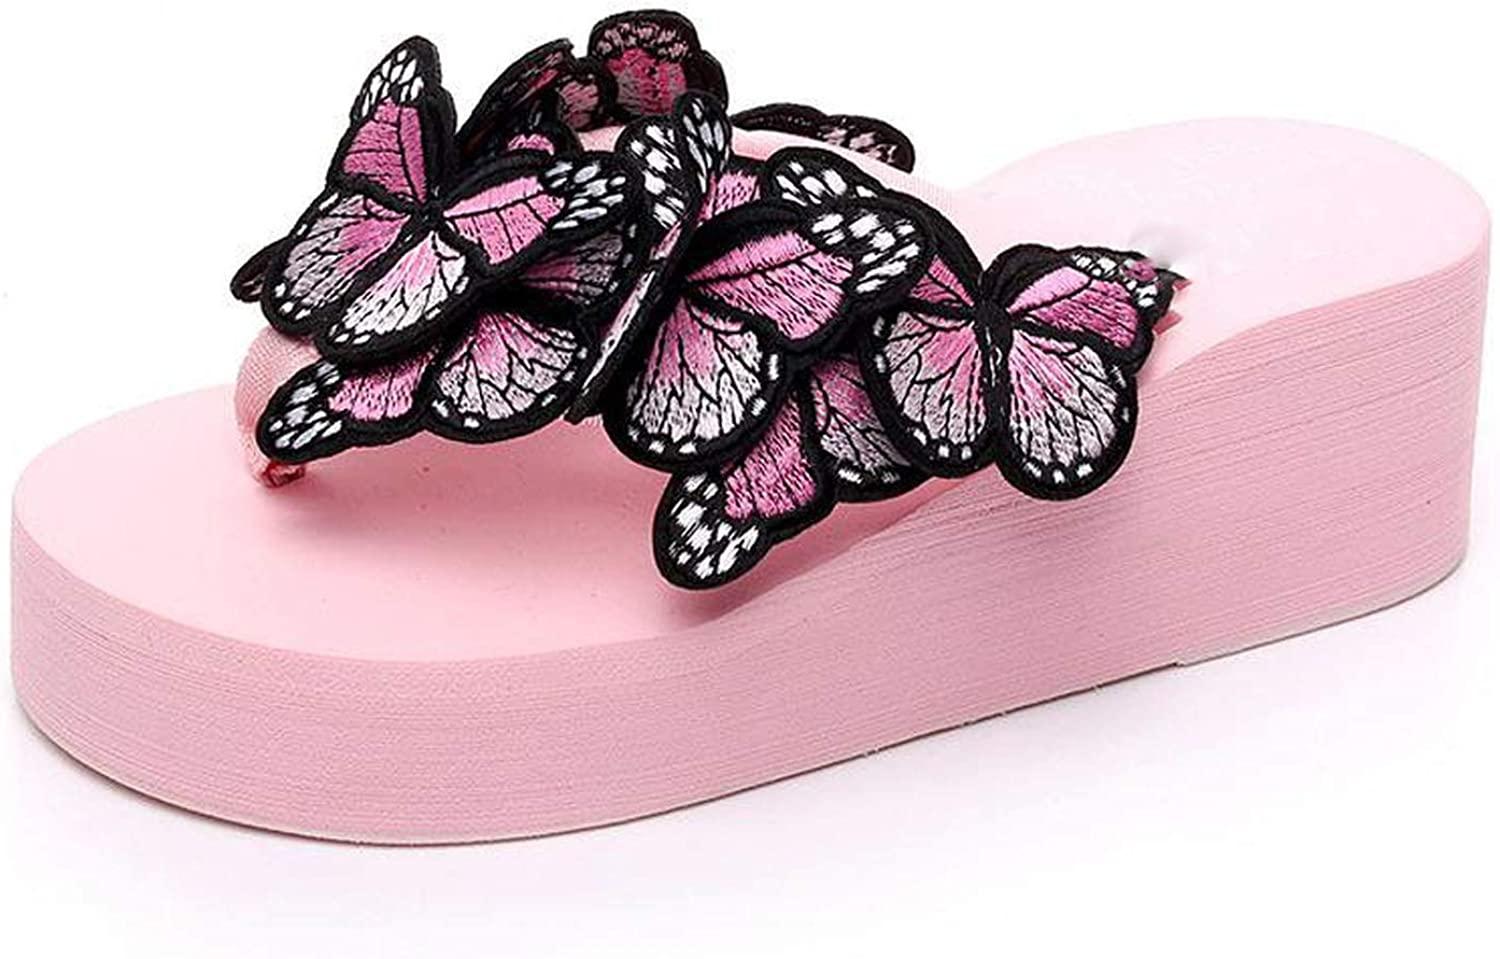 Peony red Woman Slippers Lady Fashion Casual Beach Flip-Flops Sandals 2019 Summer Butterfly Sexy High Heel Slippers Home Slippers Women